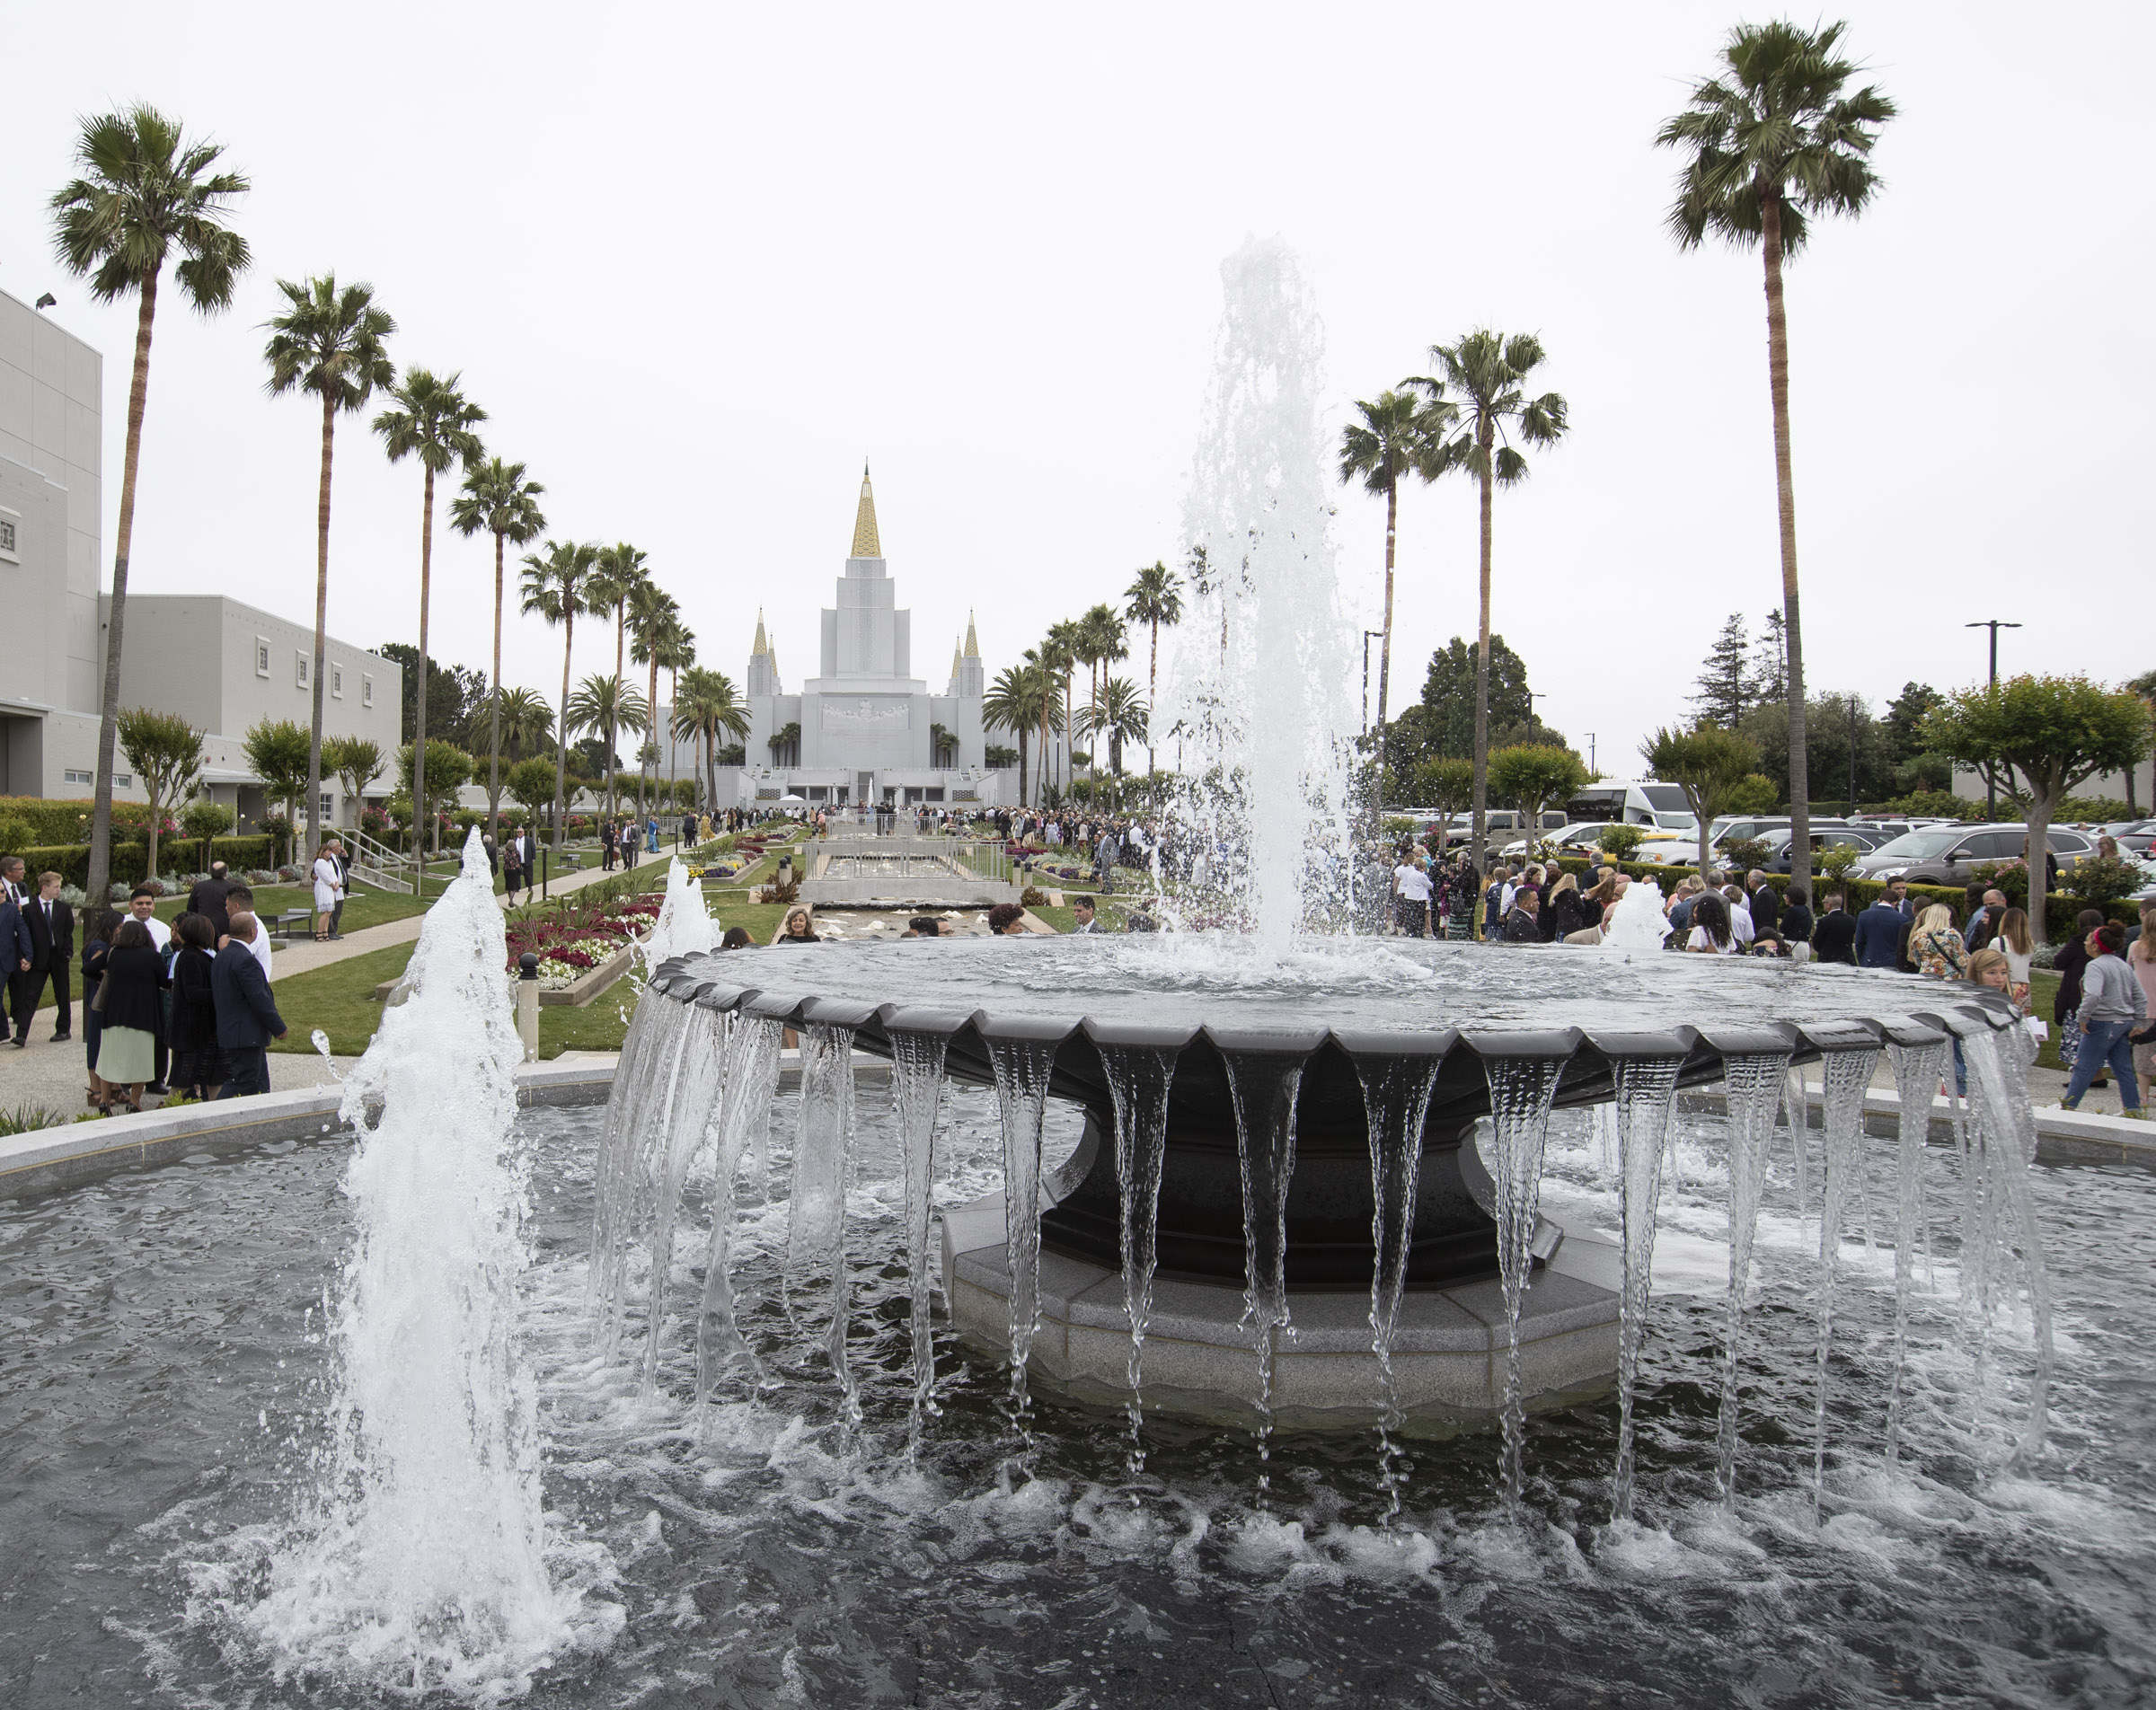 Latter-day Saints enjoy the gardens outside the Oakland California Temple as President Dallin H. Oaks, first counselor in the First Presidency, rededicate the building on Sunday, June 16, 2019.